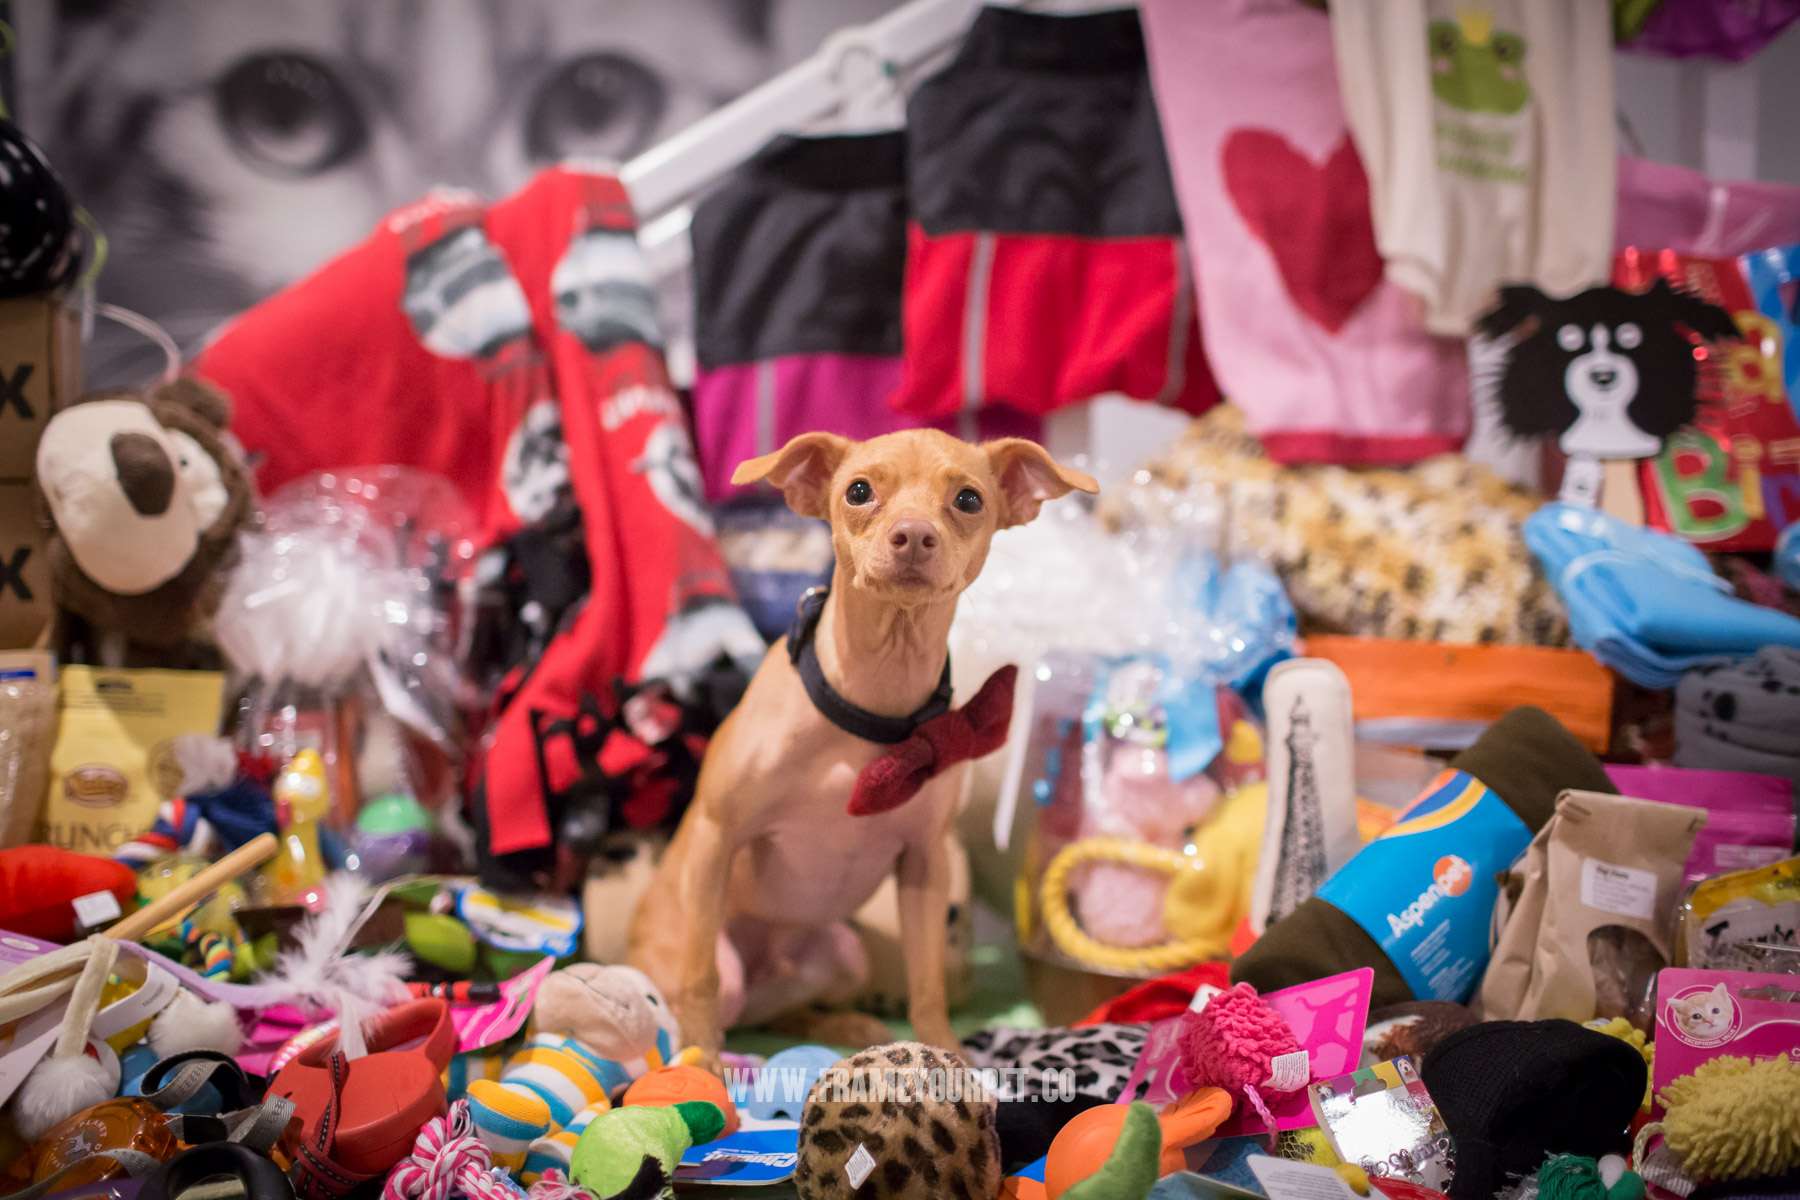 Tuna with all the toys, food and accessories that were donated for the rescued dogs at NKLA Adoption Center